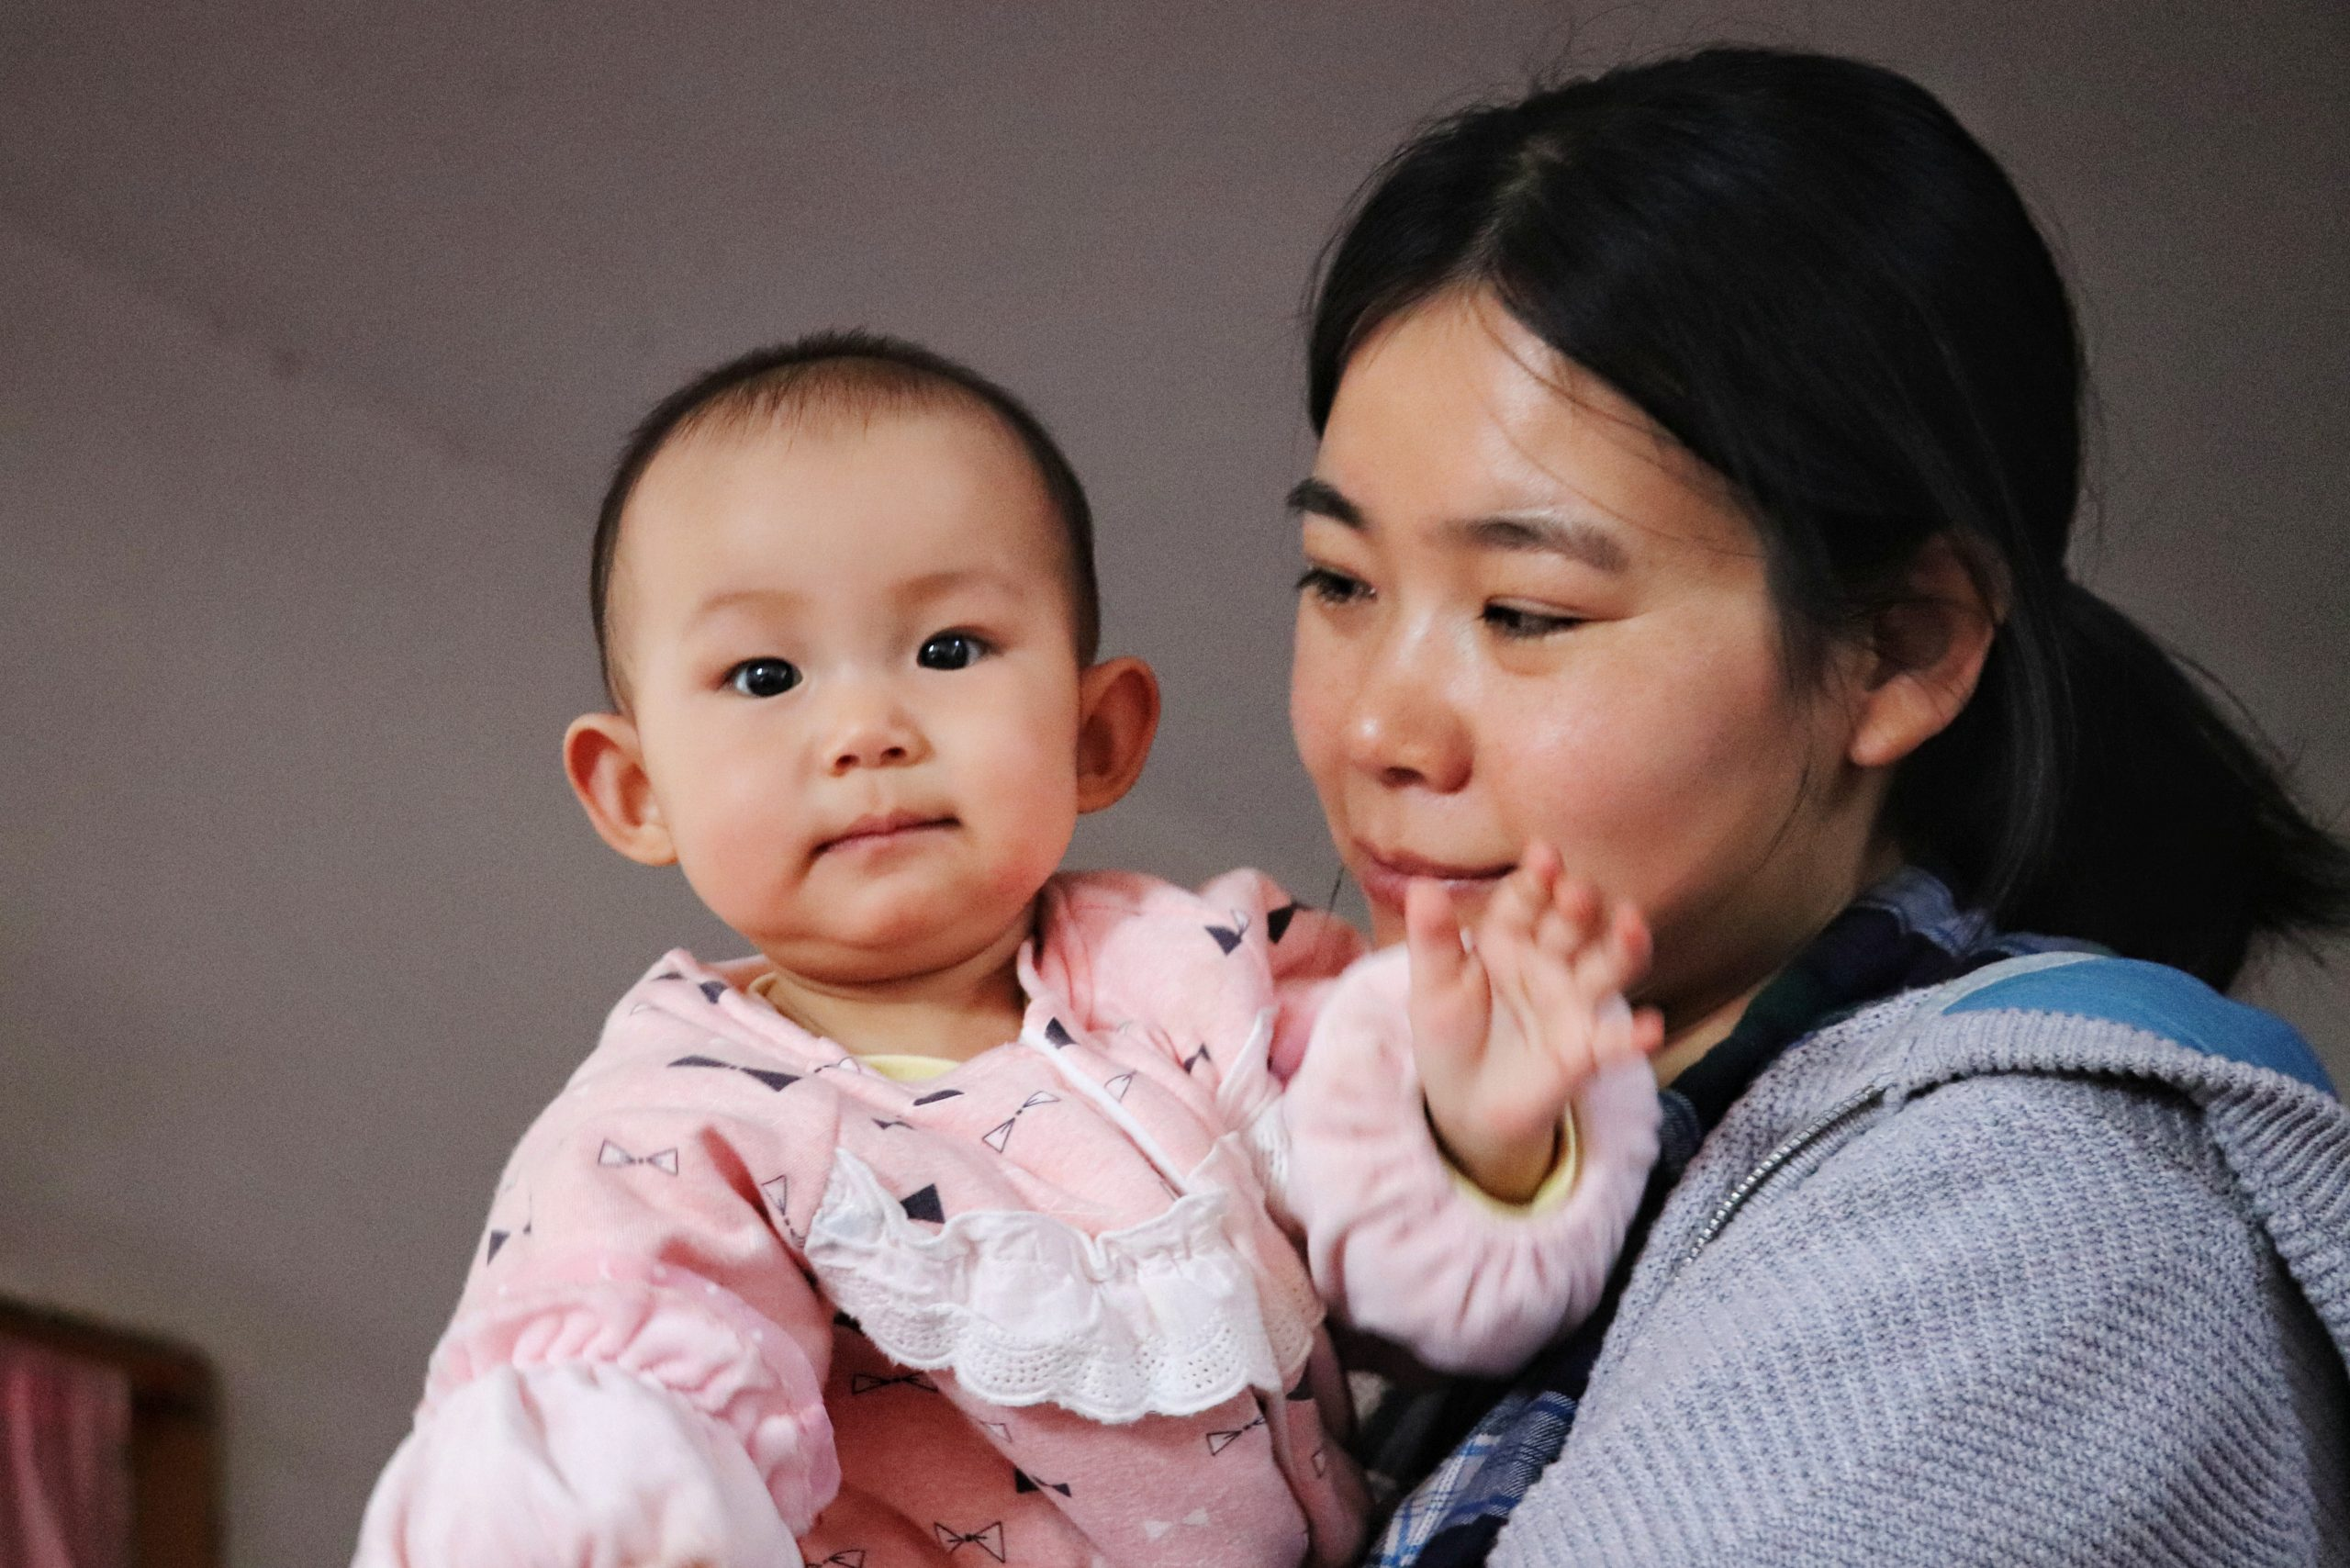 Image shows a photo of a mother holding her baby girl.